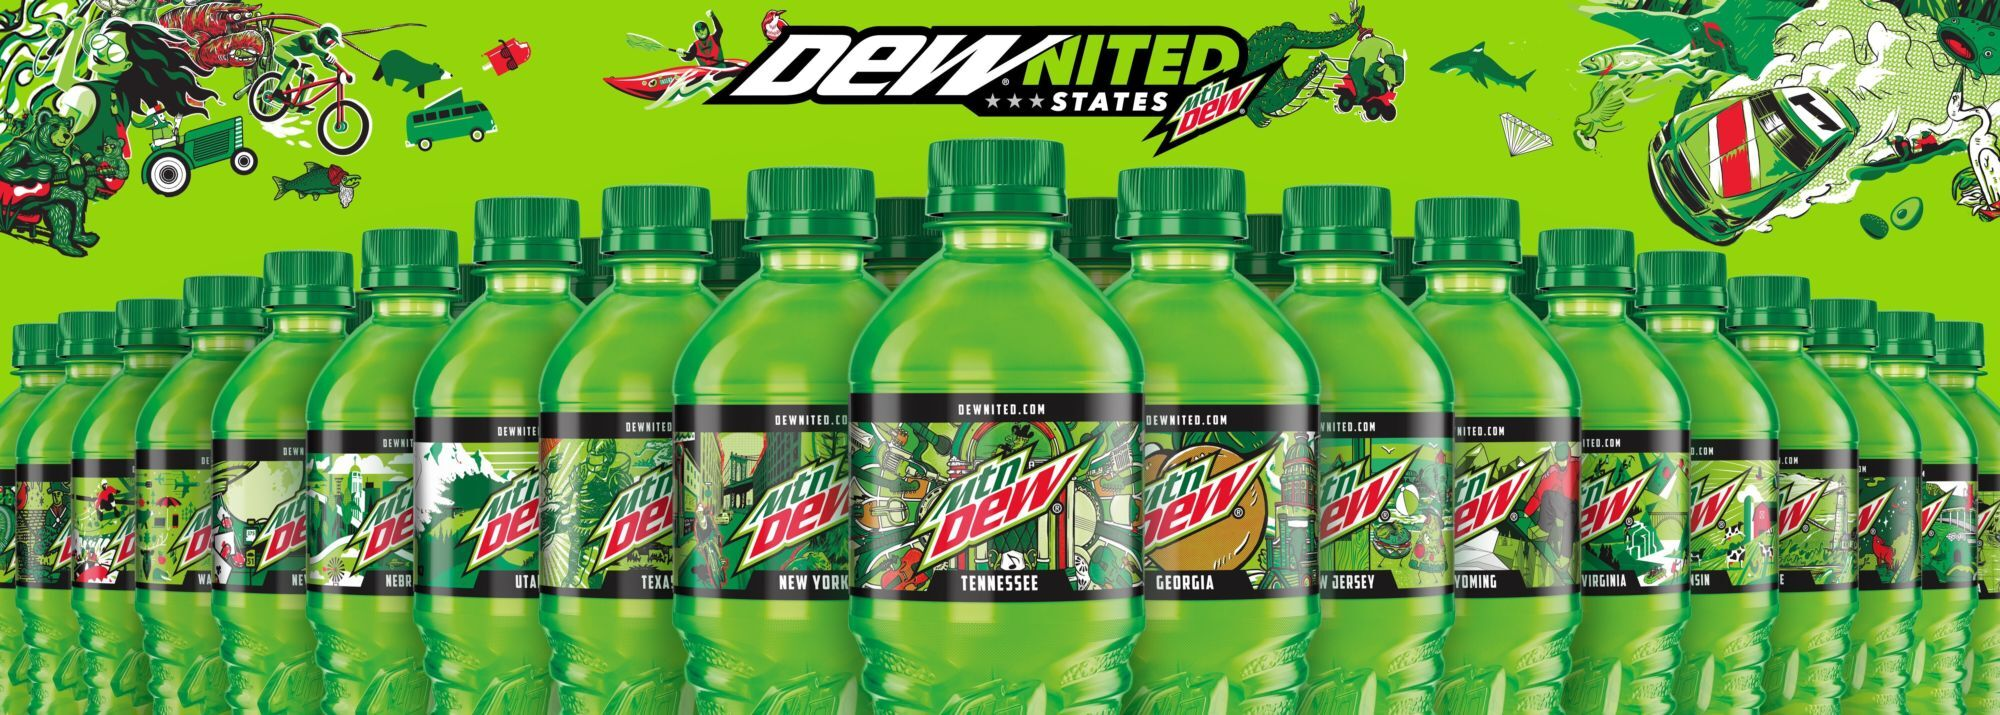 Best Mountain Dew flavors ranked: Where does Baja Blast stand?